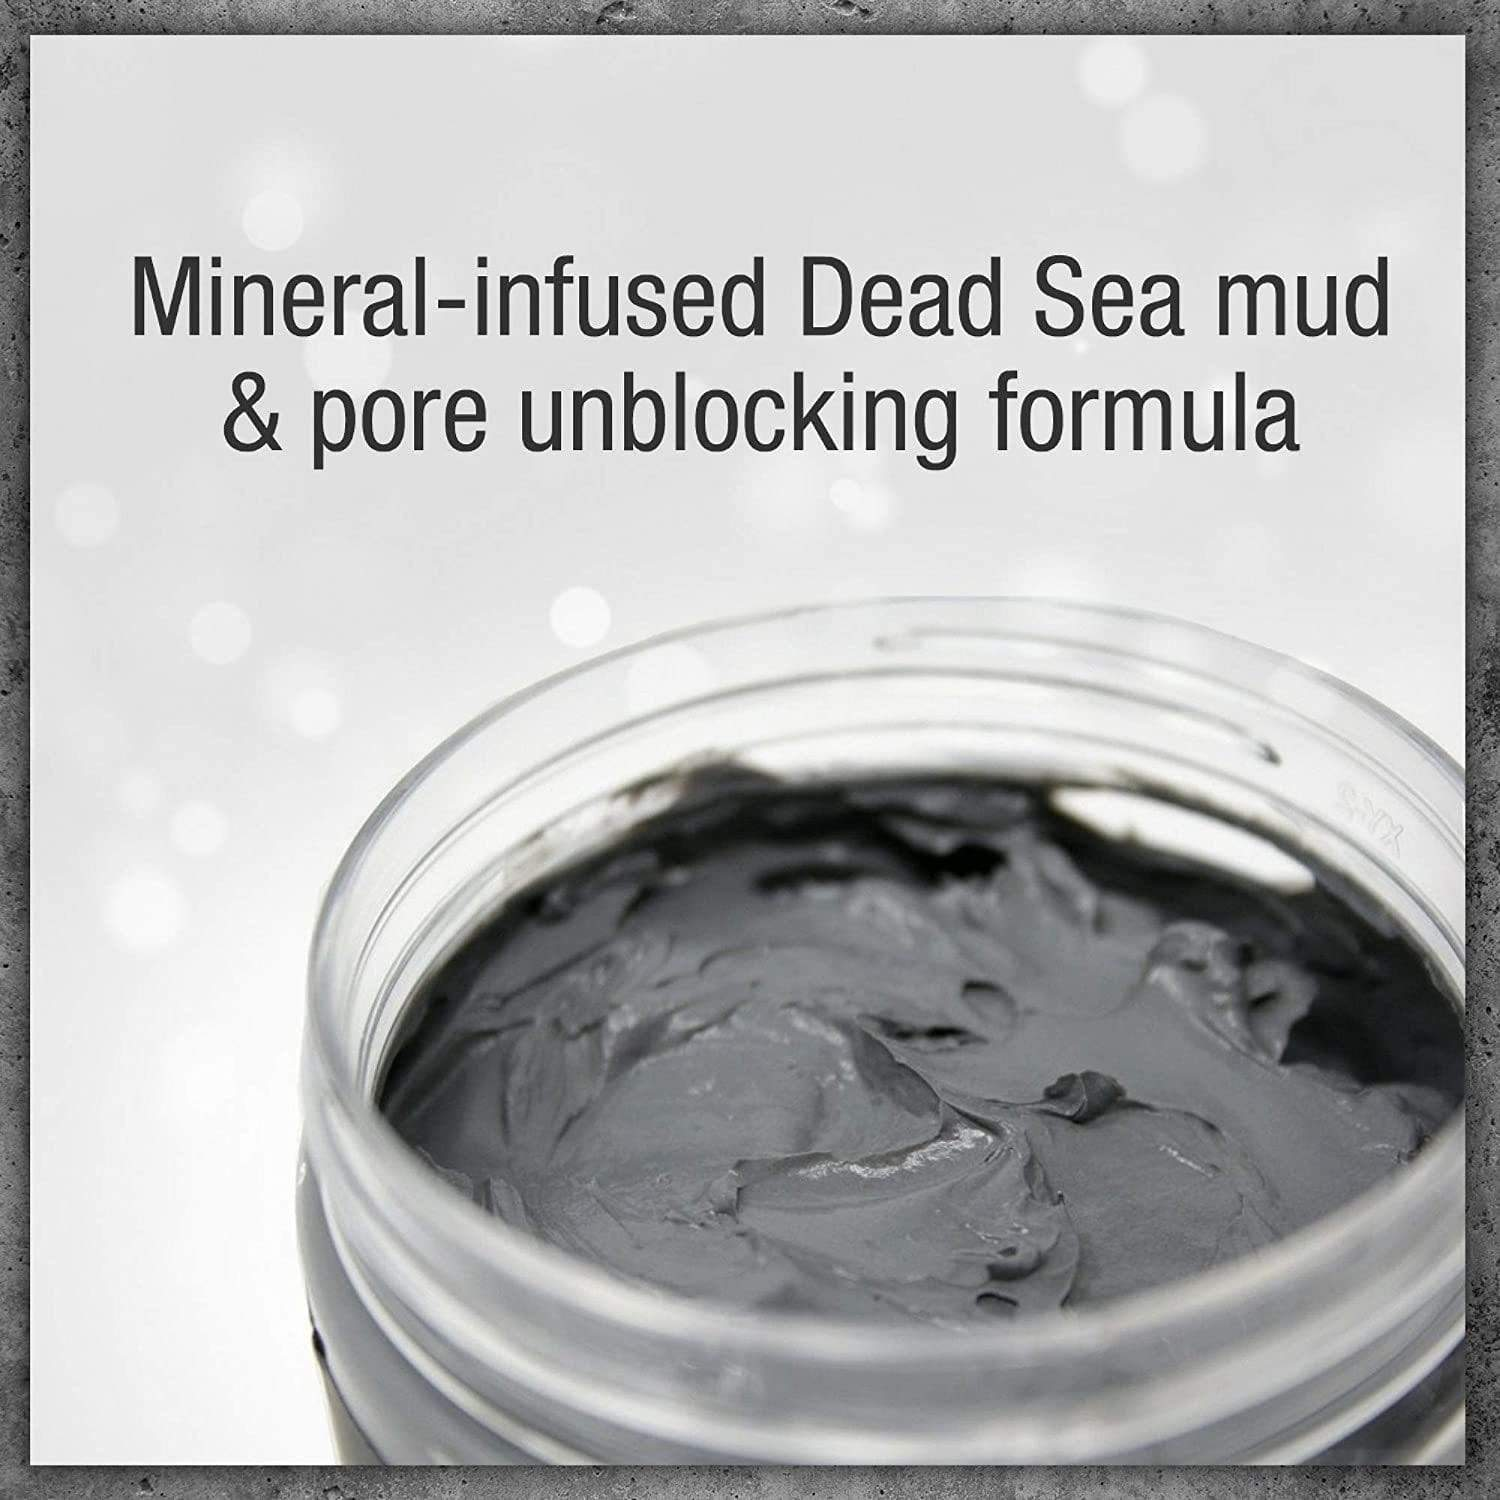 Pure Body Naturals Beauty Dead Sea Mud Mask for Facial Treatment, Skin Care, London Loves Beauty